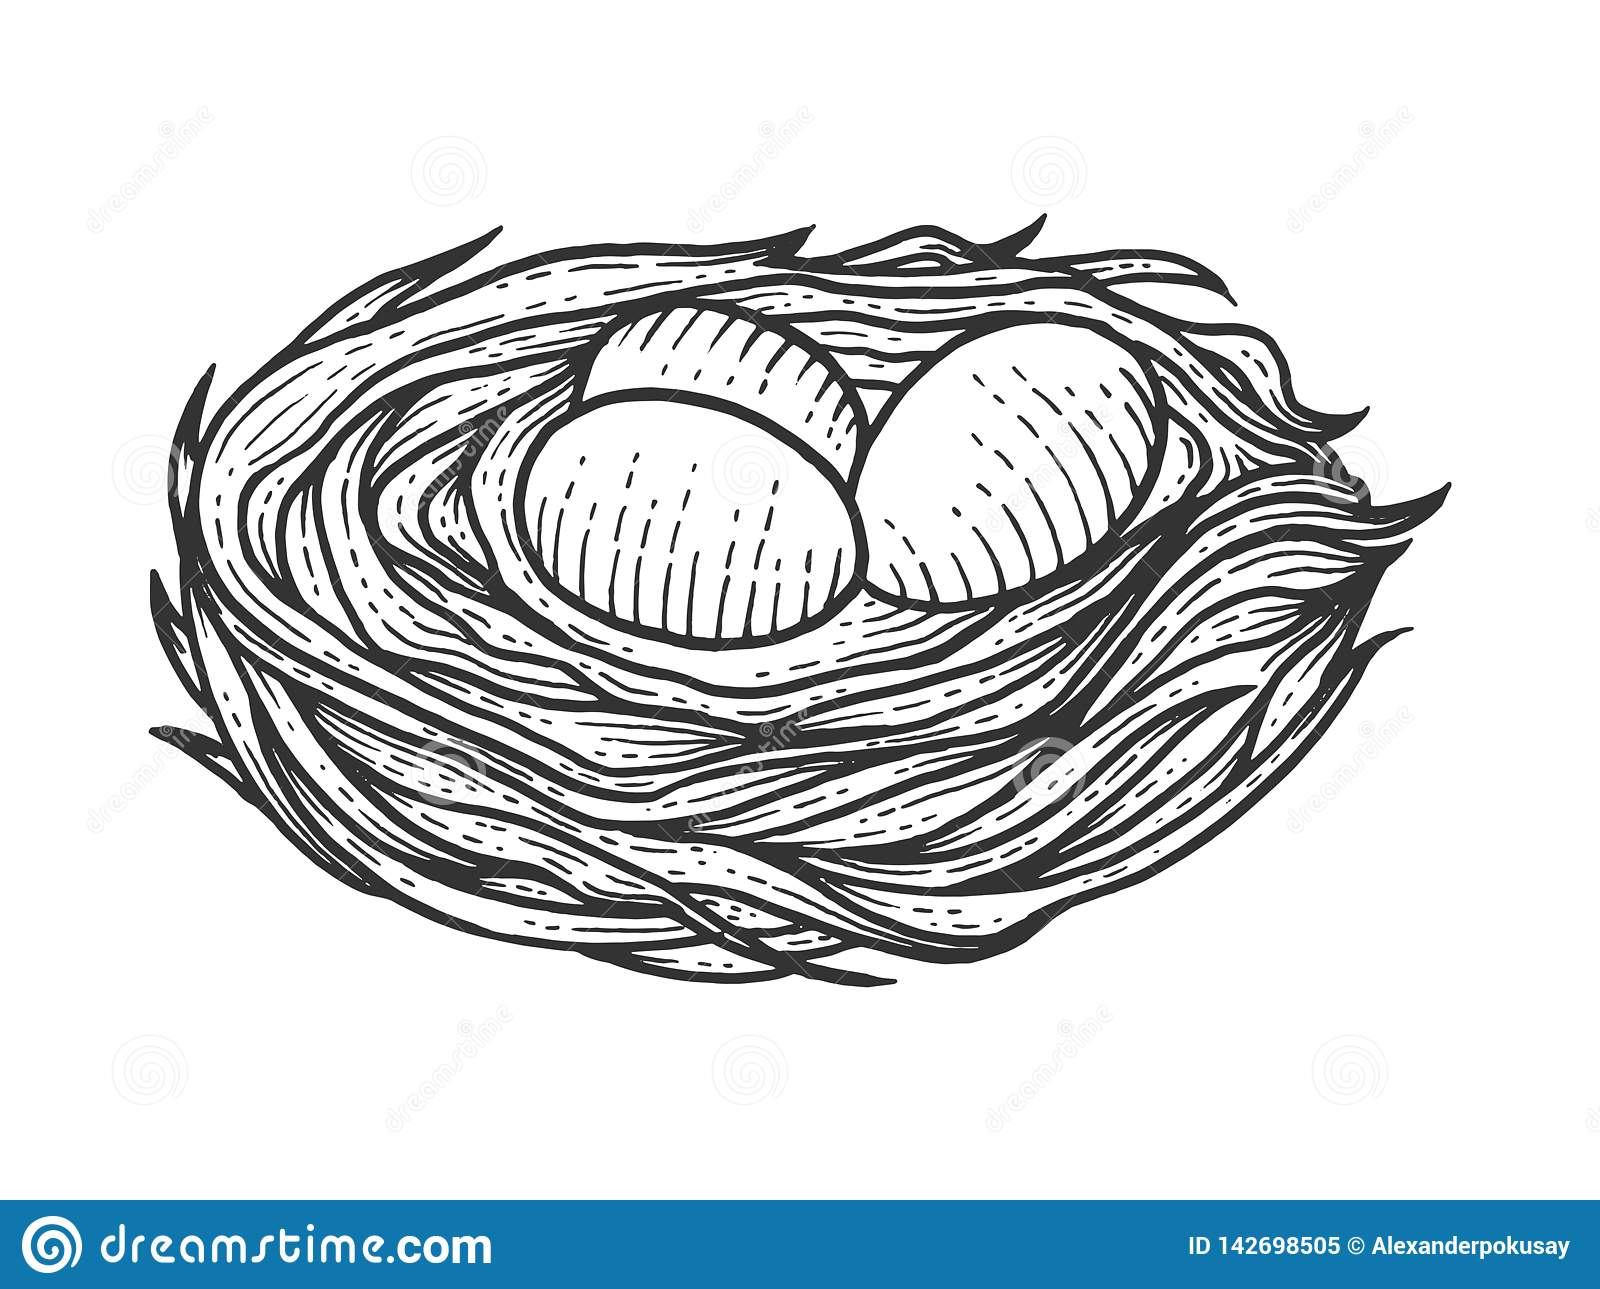 Nest clipart black and white, Picture #1731018 nest clipart black and white